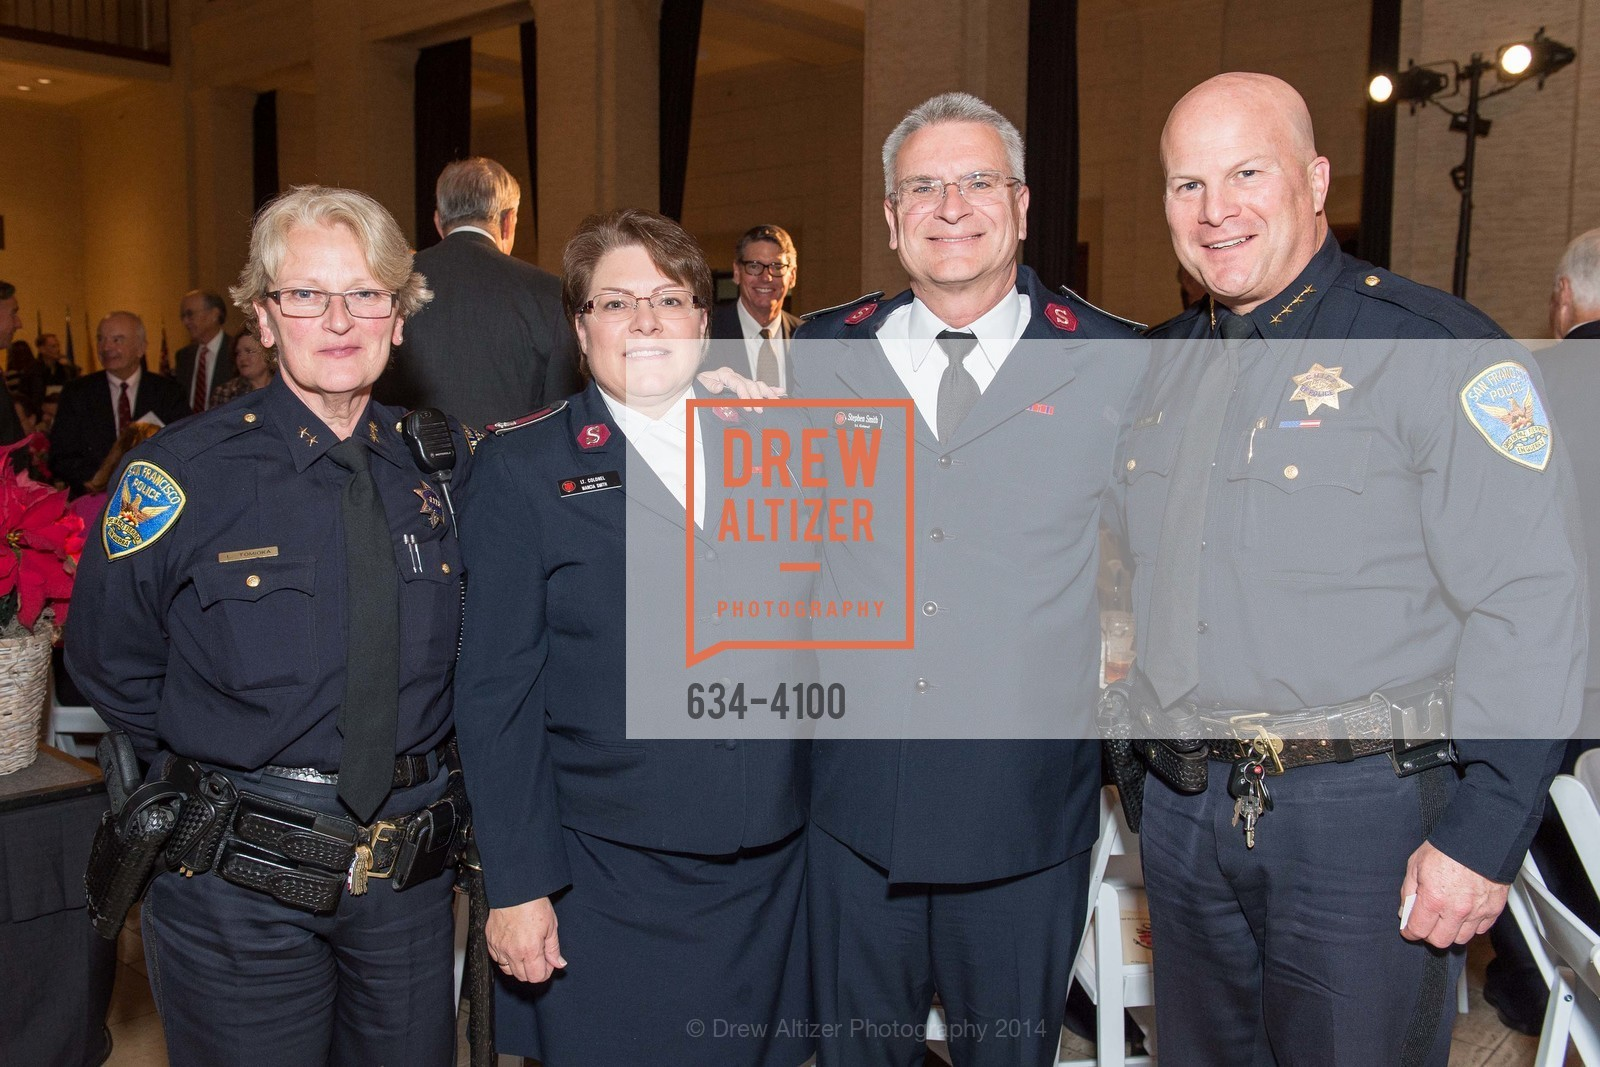 Lyn Tomioka, Lt.Col. Marcia Smith, Lt.Col. Stephen Smith, Greg Suhr, Photo #634-4100